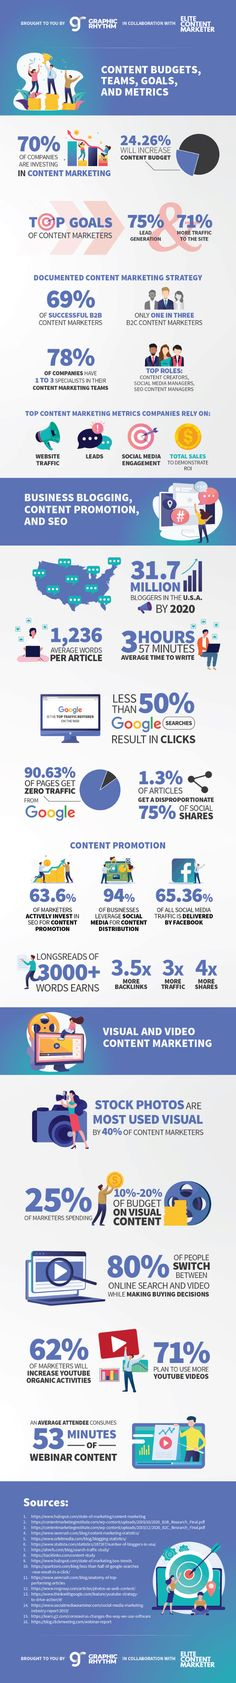 In this amazing infographic, you'll find a detailed analysis that will hopefully help you develop a stronger content marketing strategy for 2020. Content Marketing Strategy, Marketing Program, Marketing Plan, Social Media Marketing, Internet Marketing, Digital Marketing, Social Media Research, Social Media Trends, Entrepreneur